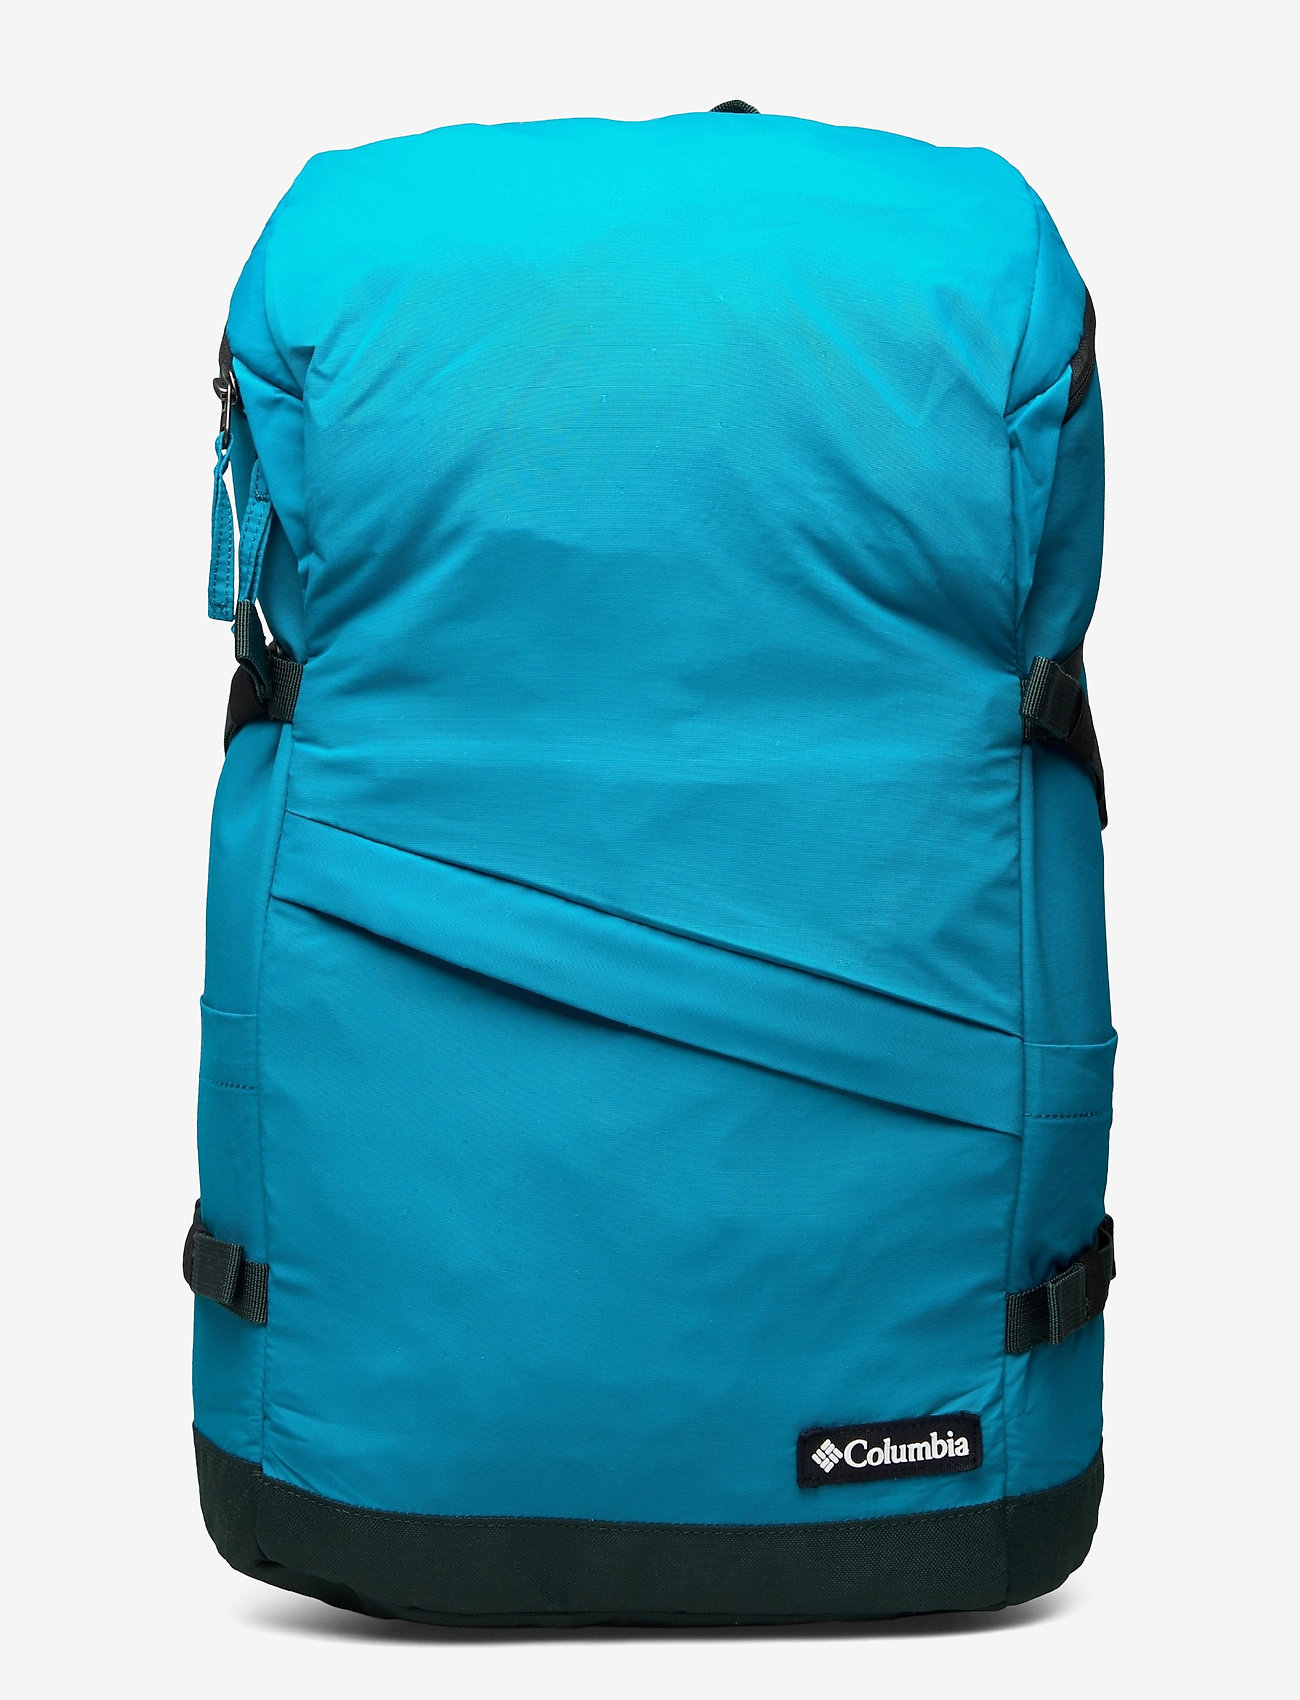 Columbia - Falmouth™ 24L Backpack - torby treningowe - fjord blue, spr - 0